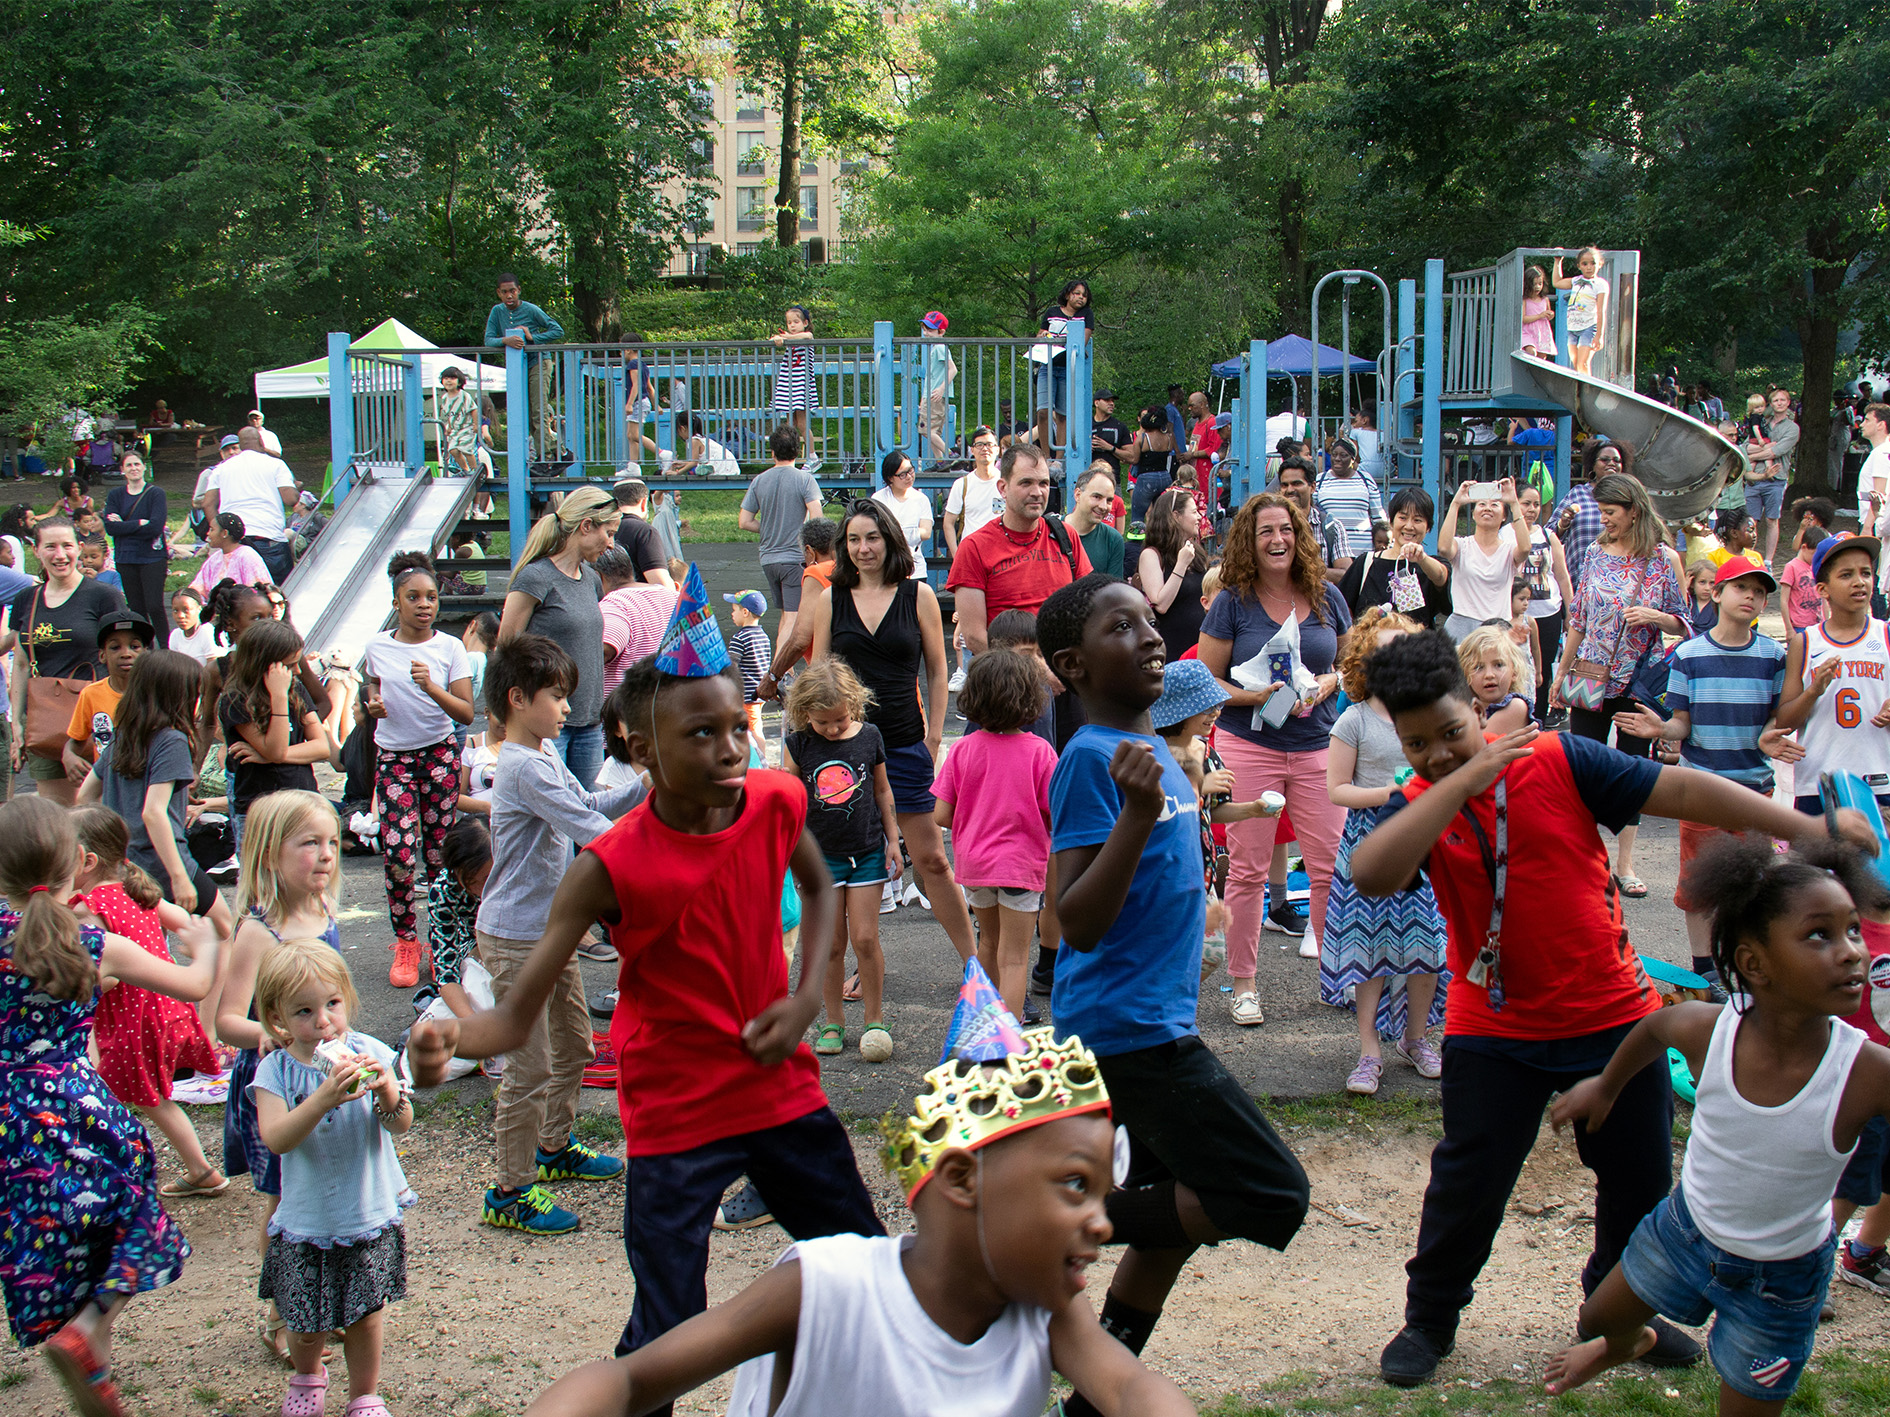 16th Annual NYC Kidsfest at NYC Open Culture presents 16th Annual NYC Kidsfest